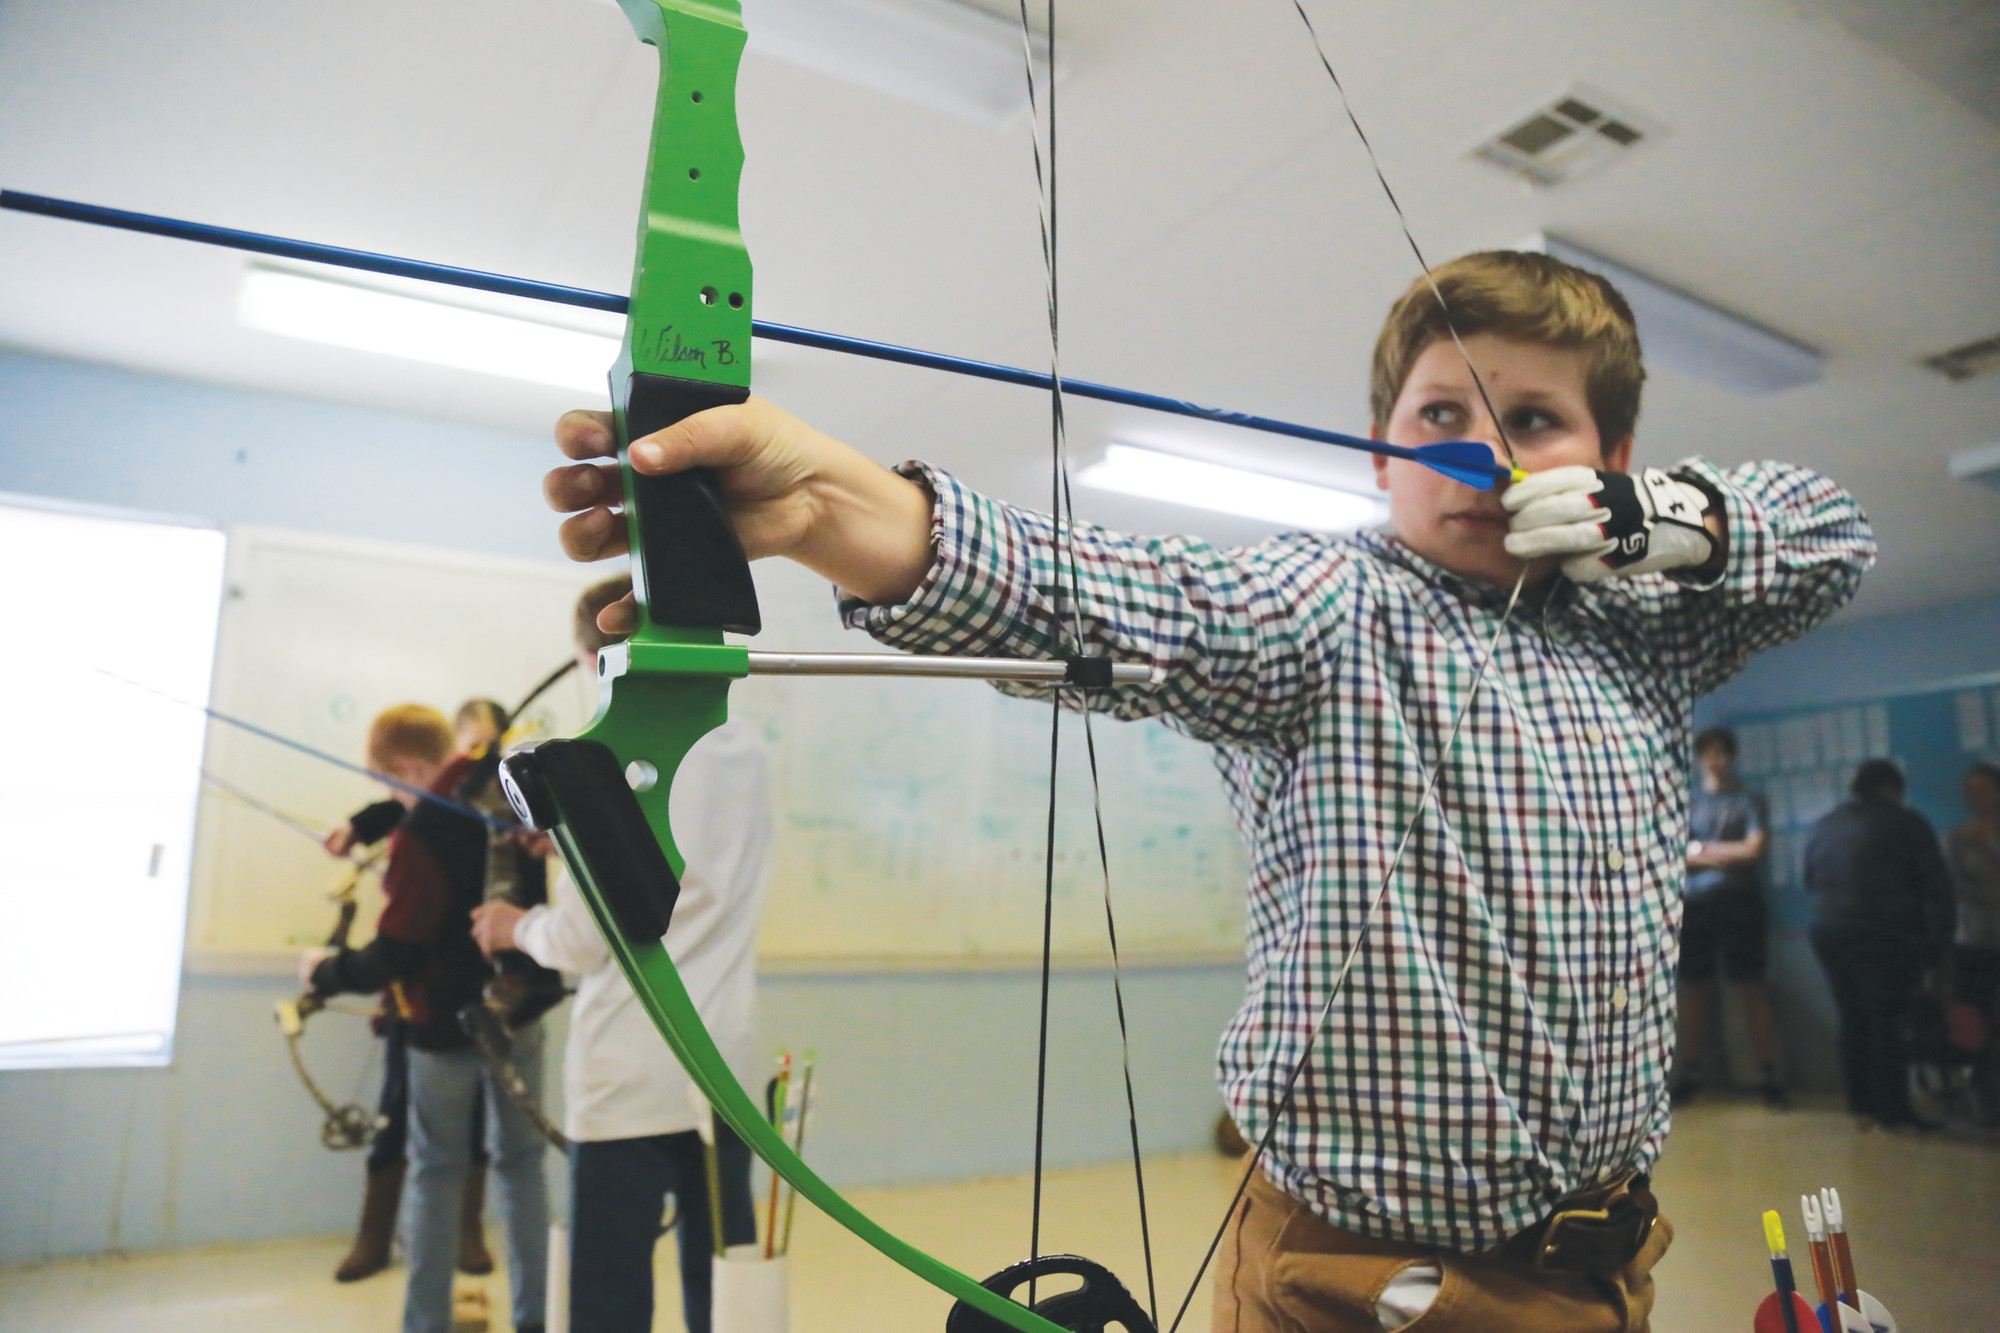 TSA fifth-grader William Britton will lead the elementary school team at the upcoming National Archery in the Schools Program state tournament to be held March 27-29 at Sumter County Civic Center.